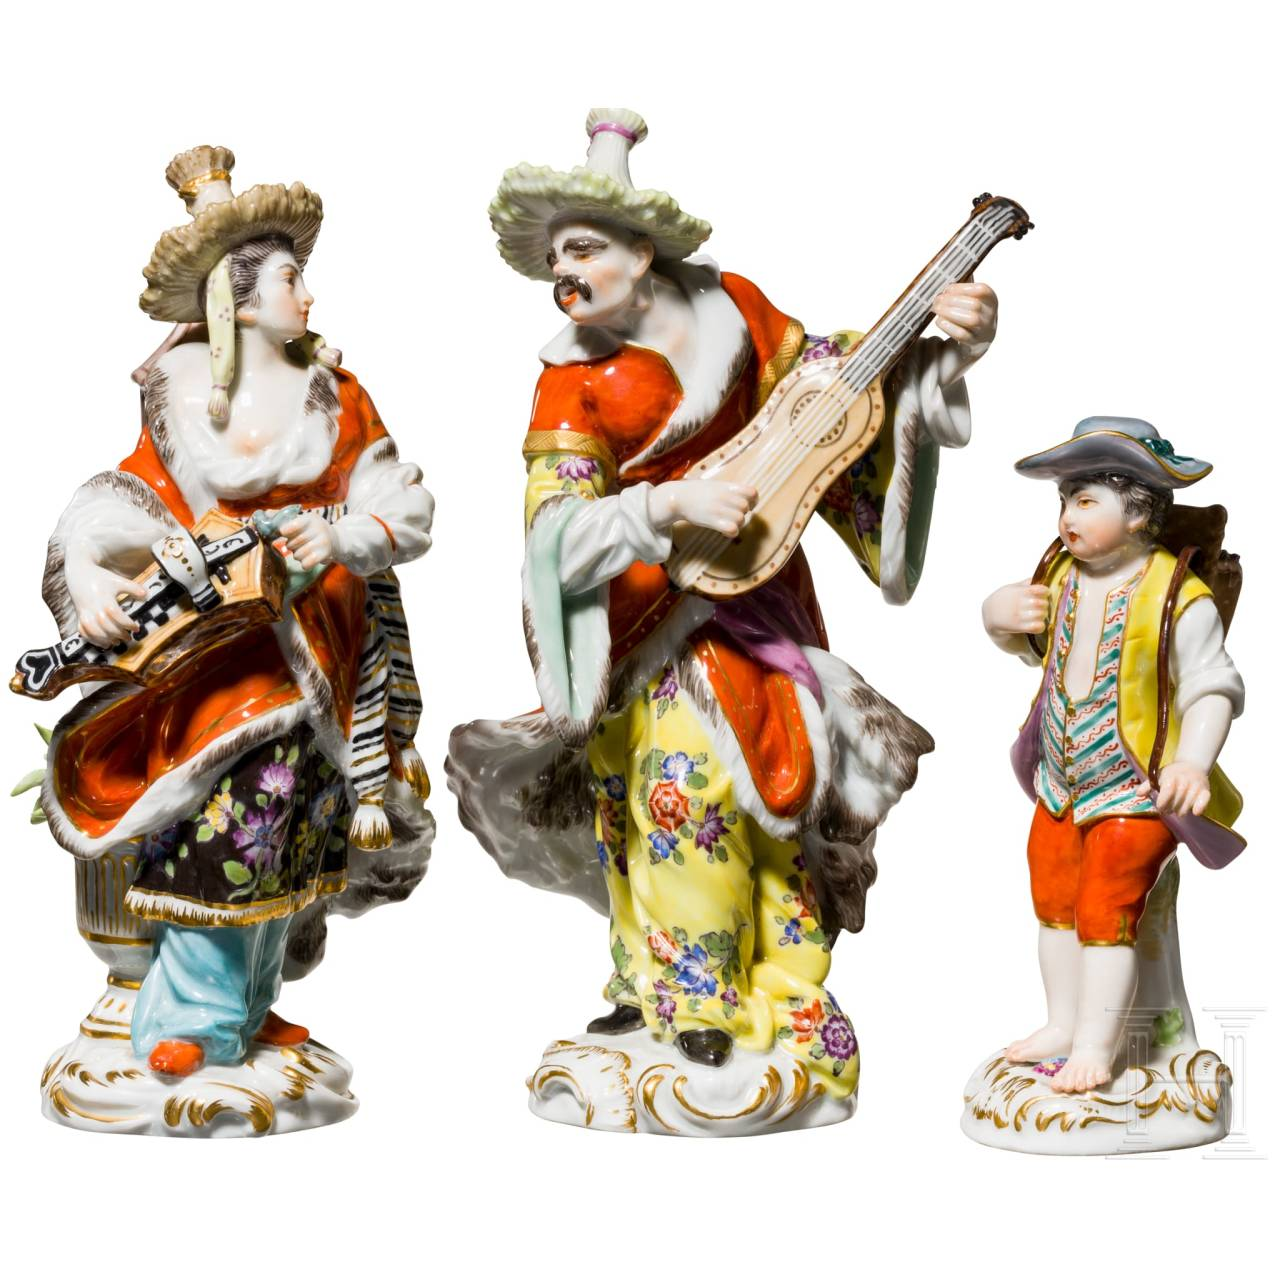 Three figures of the porcelain manufactory Meissen, 20th century